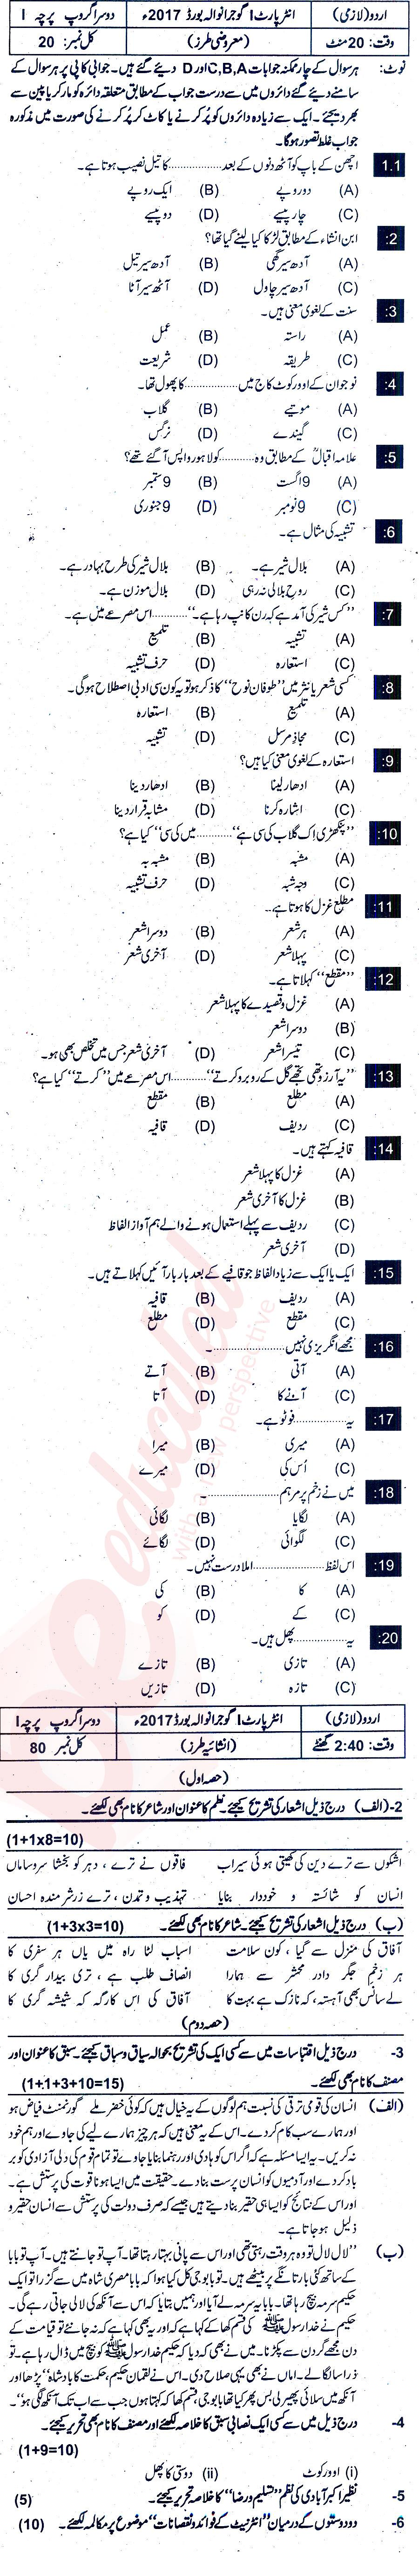 urdu papers Get latest cambridge o level second language urdu past papers, marking schemes examiner reports and grade thresholds second language urdu may/june 2017.